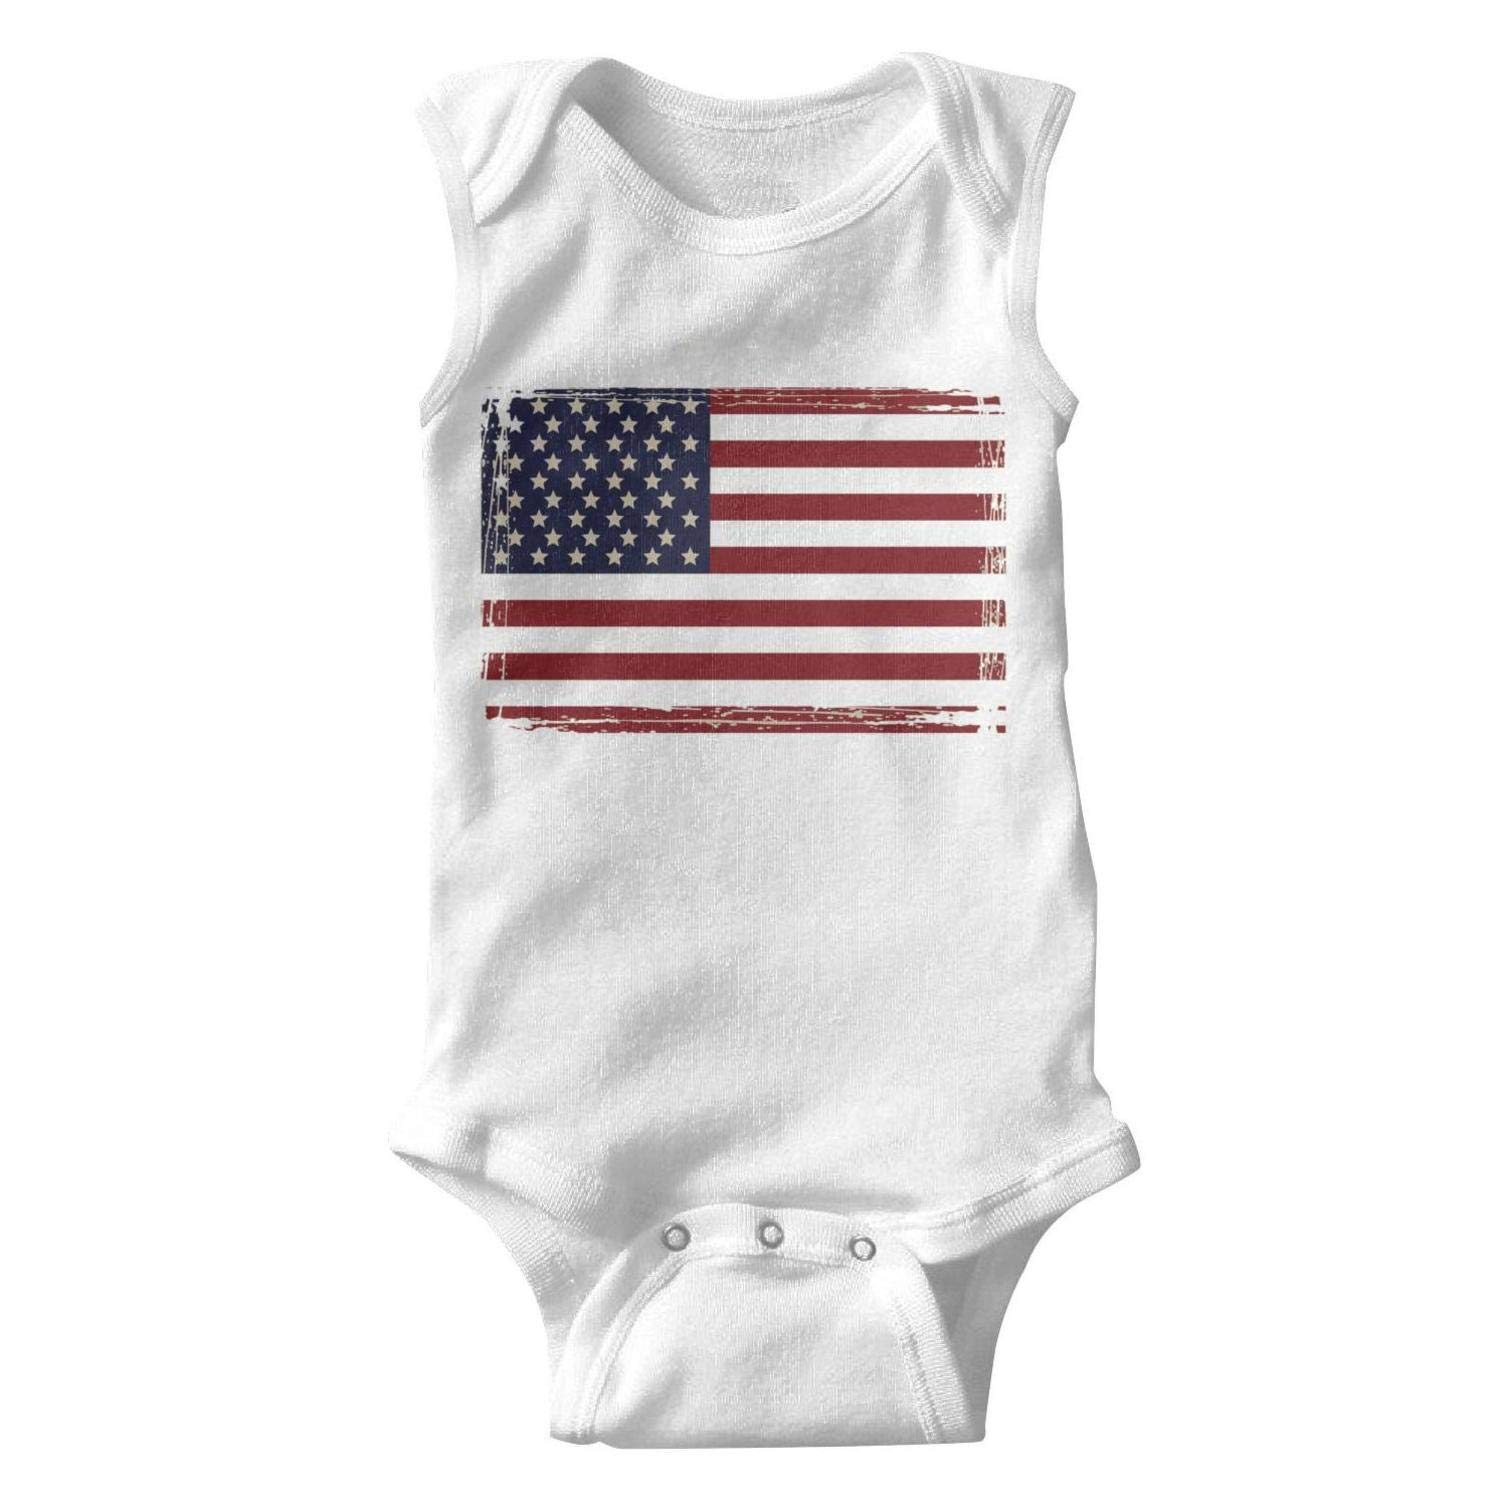 Amazon.com: Sleeveless Newborn Baby Girl Onesies American Flag.